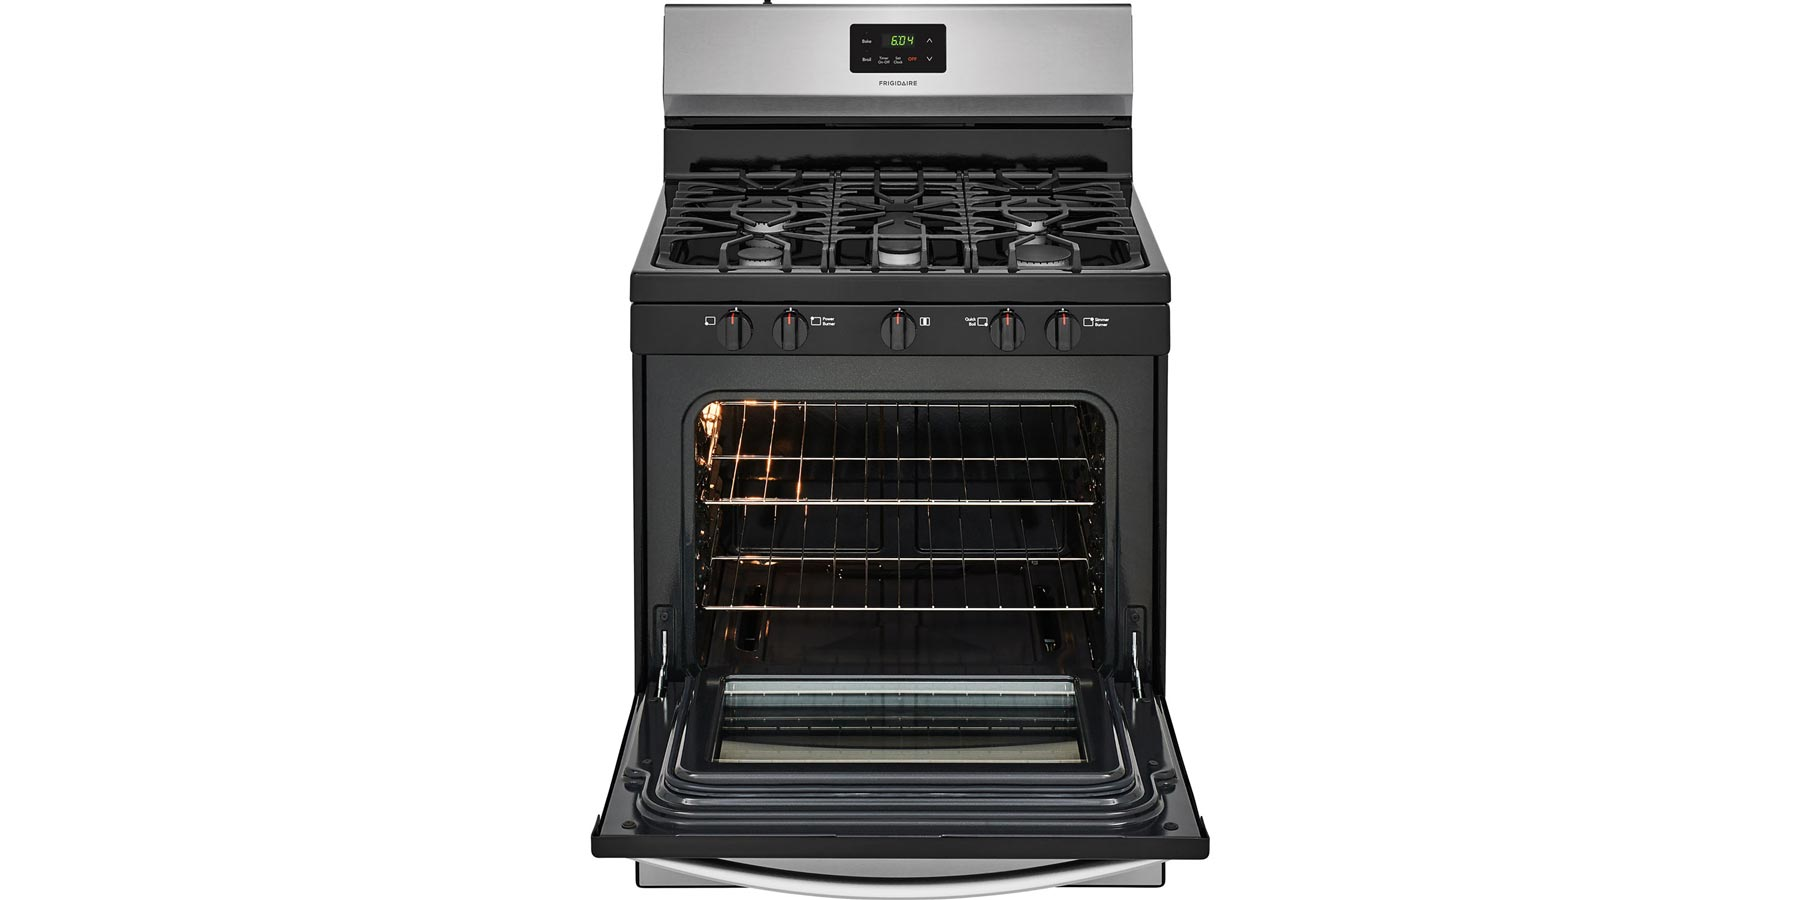 Cooktop Gas Stoves Frigidaire 30 Quot Freestanding Gas Range With 5 Burner